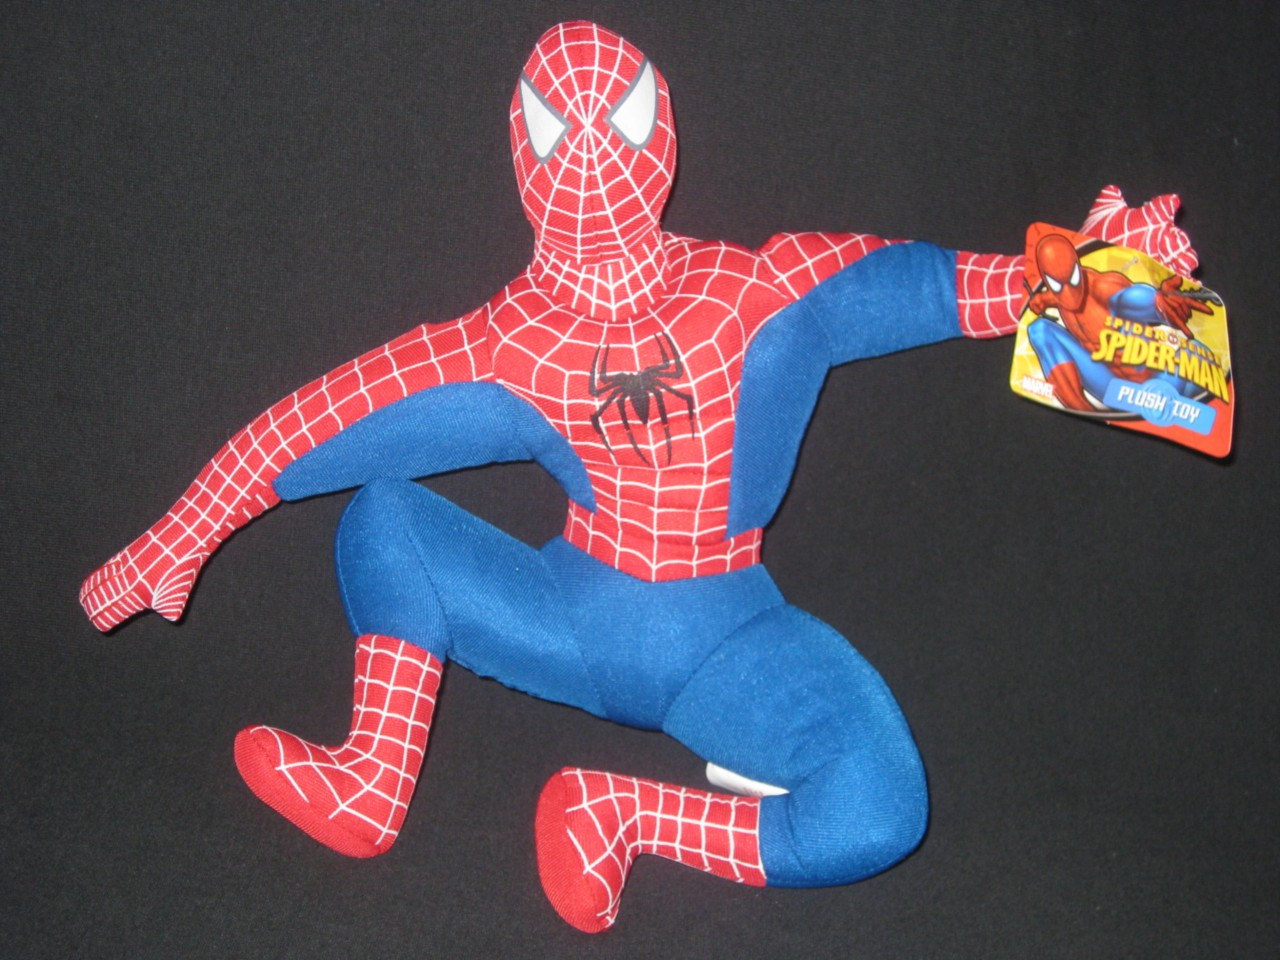 Spiderman Toys Uk On Shoppinder